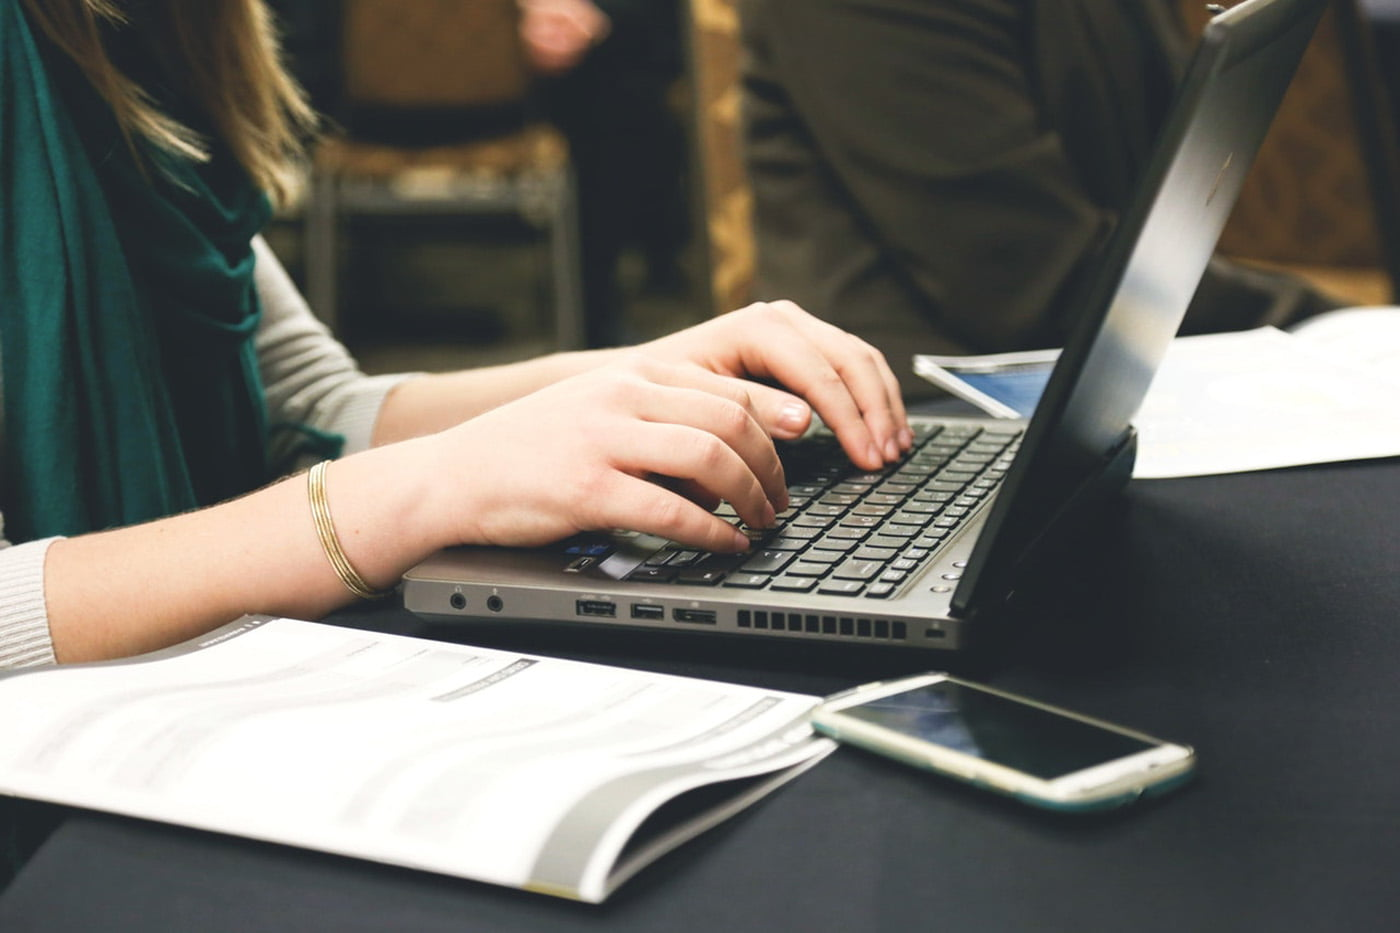 What Will the Future of Blogging Look Like?